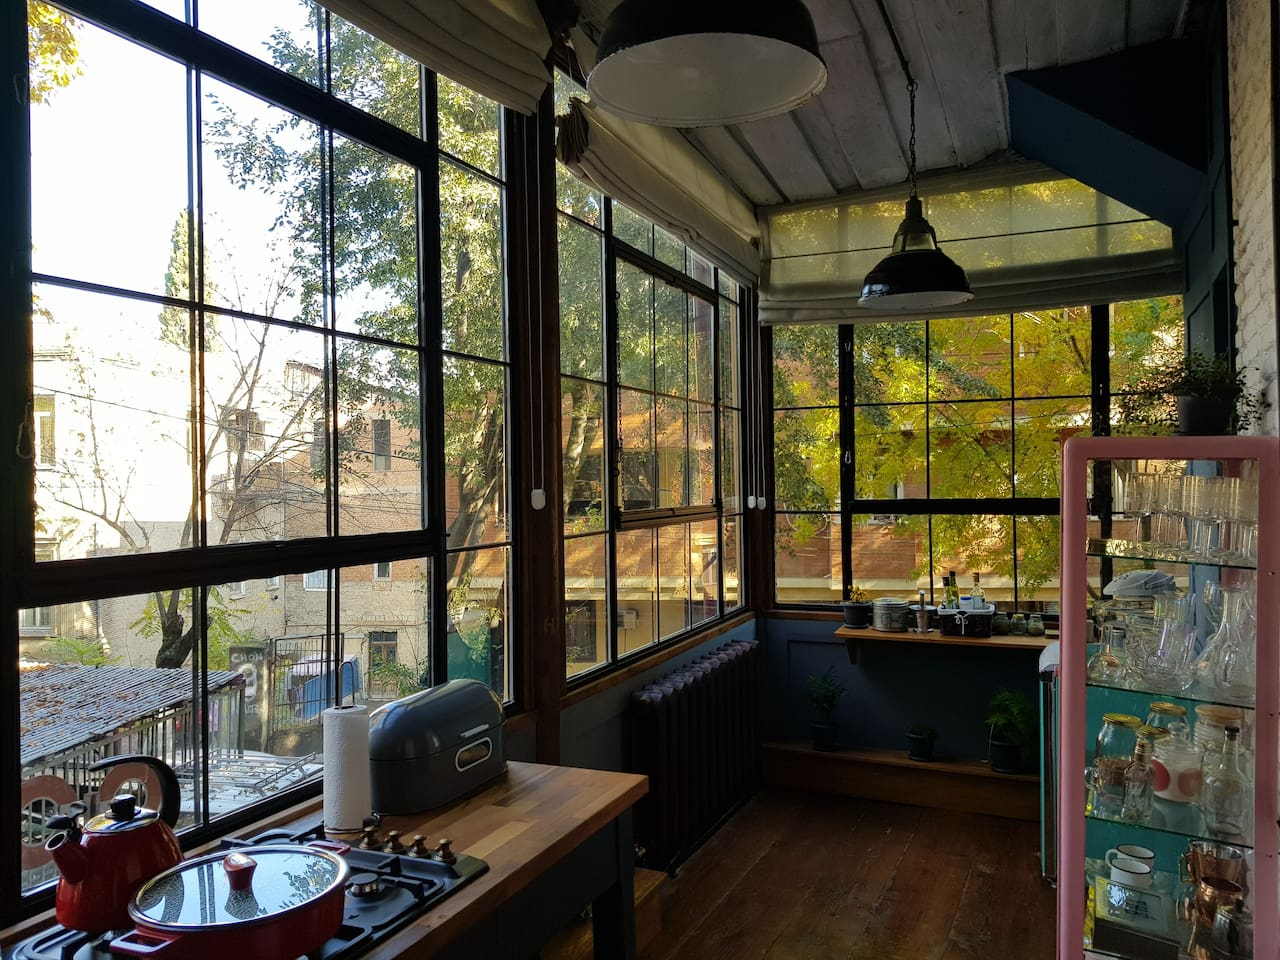 The kitchen windows have Roman curtains that can be closed for keeping the light out and for providing more privacy.